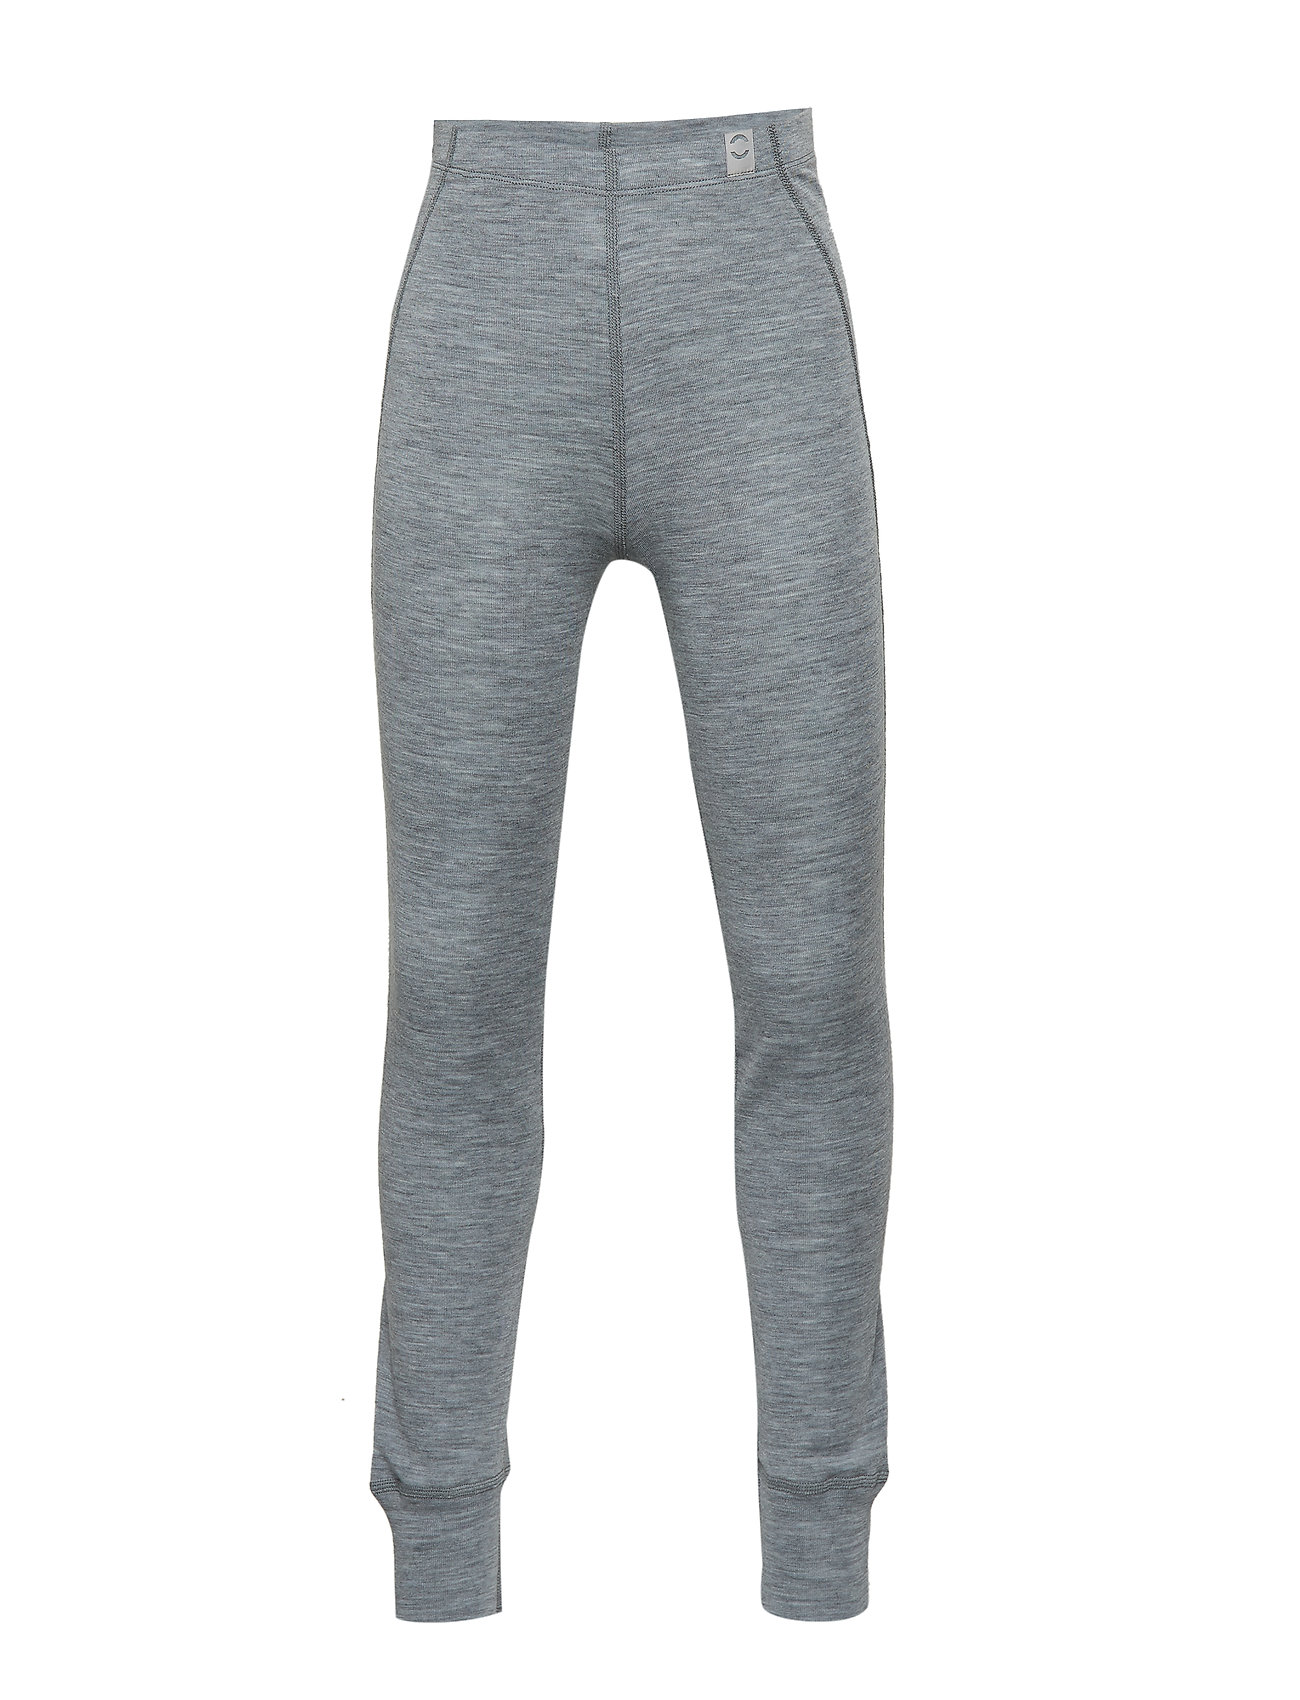 Image of Wool Pants Leggings Grå Mikk-Line (3067539507)